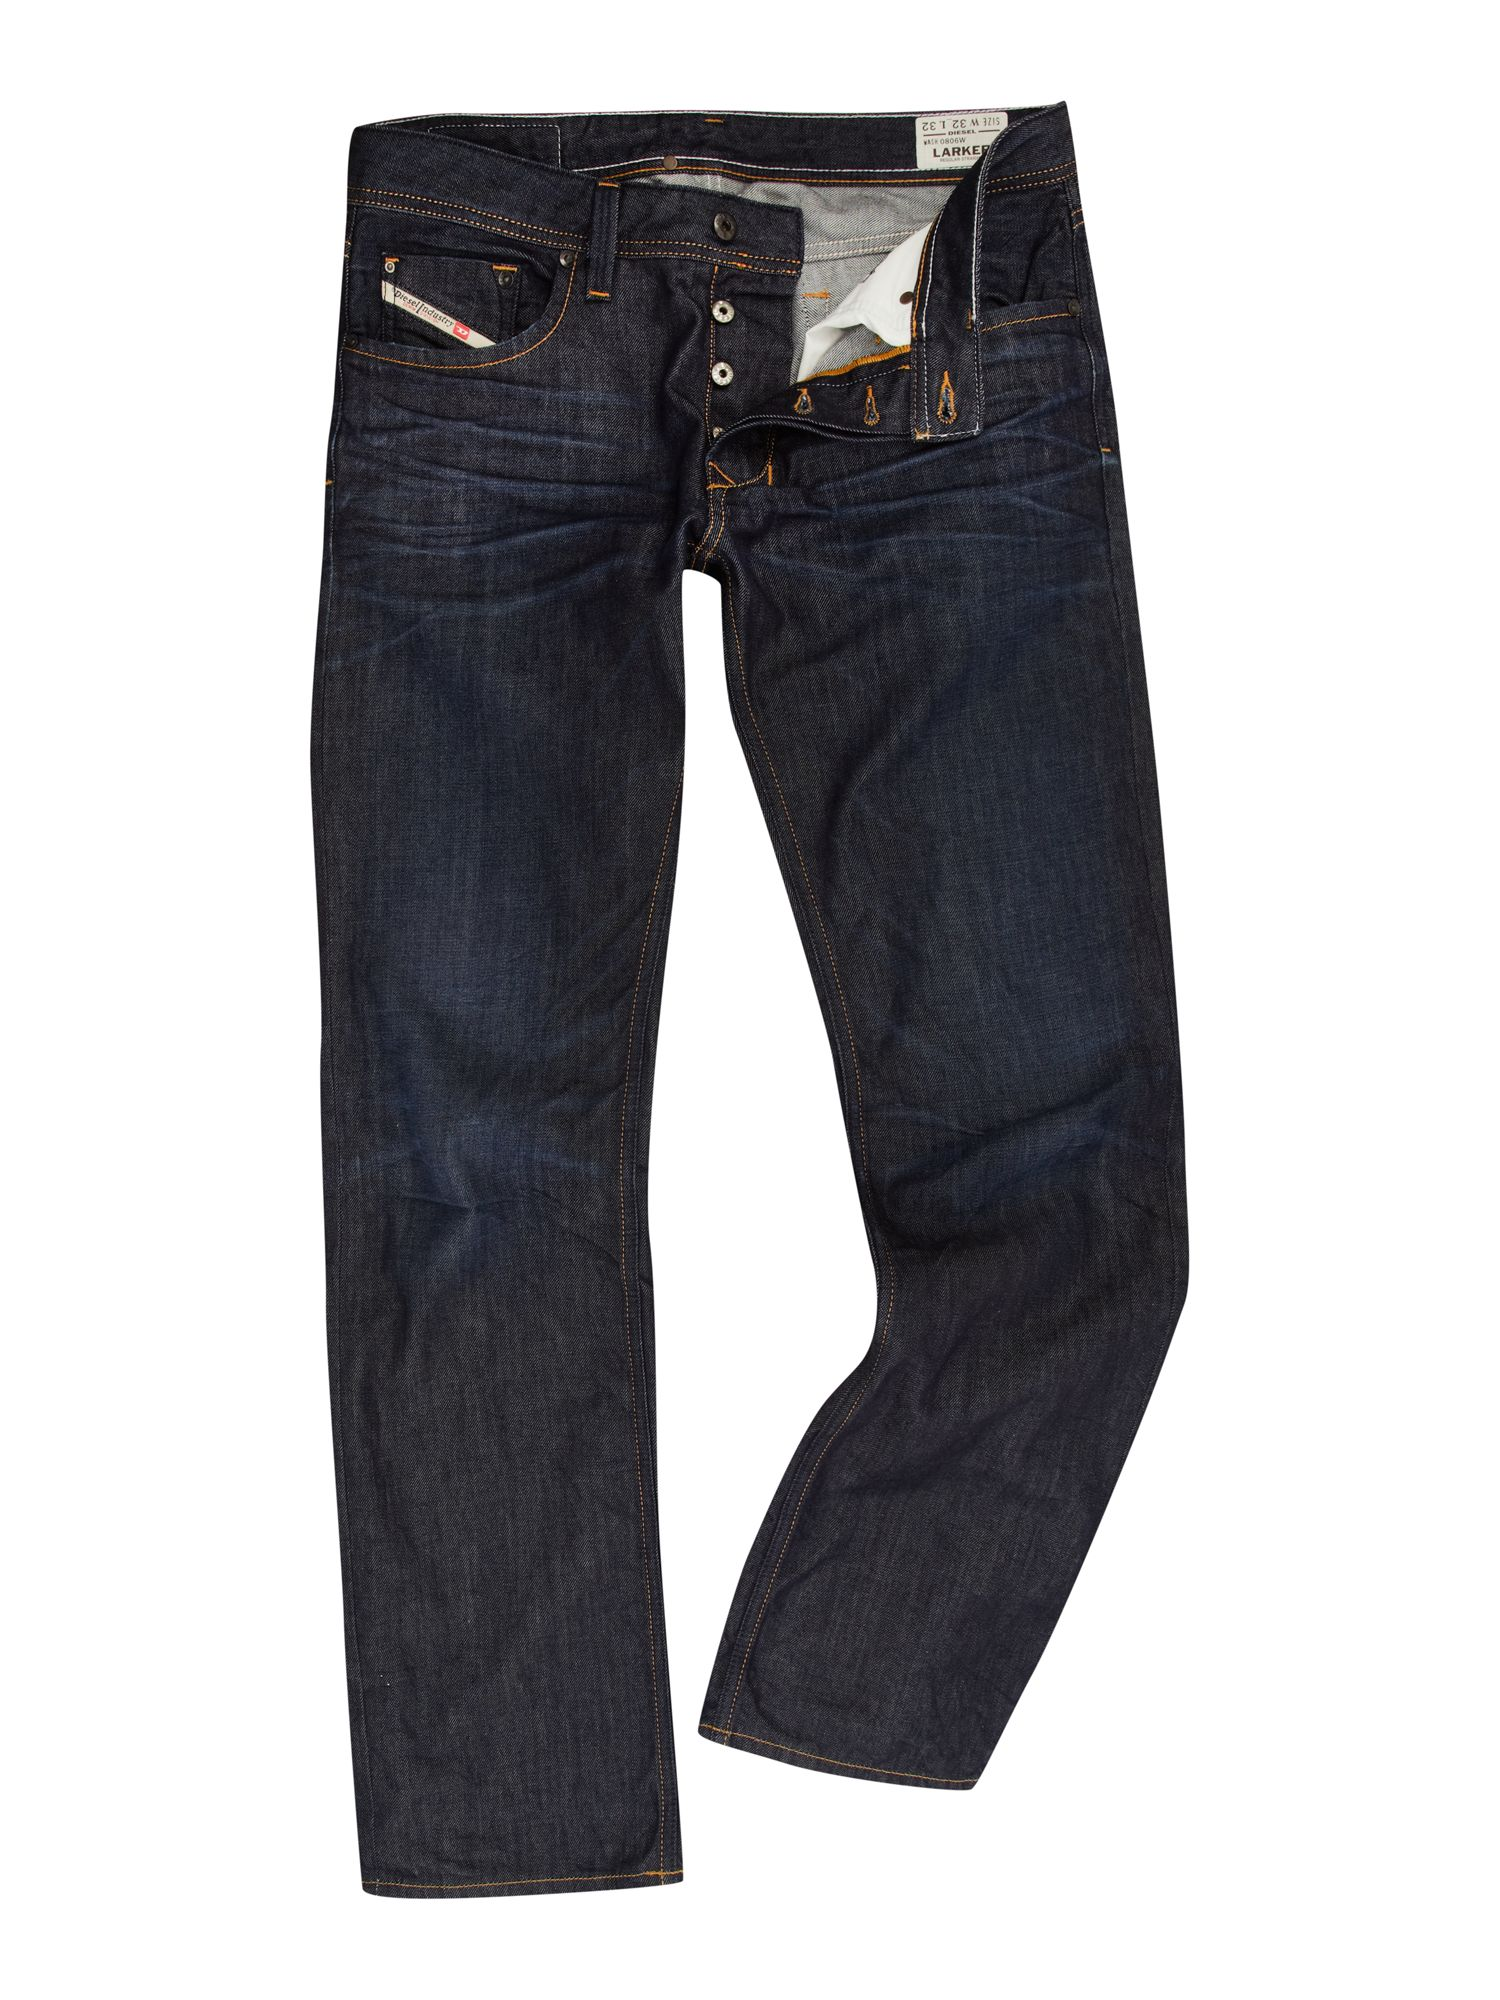 Larkee 806W straight fit jeans